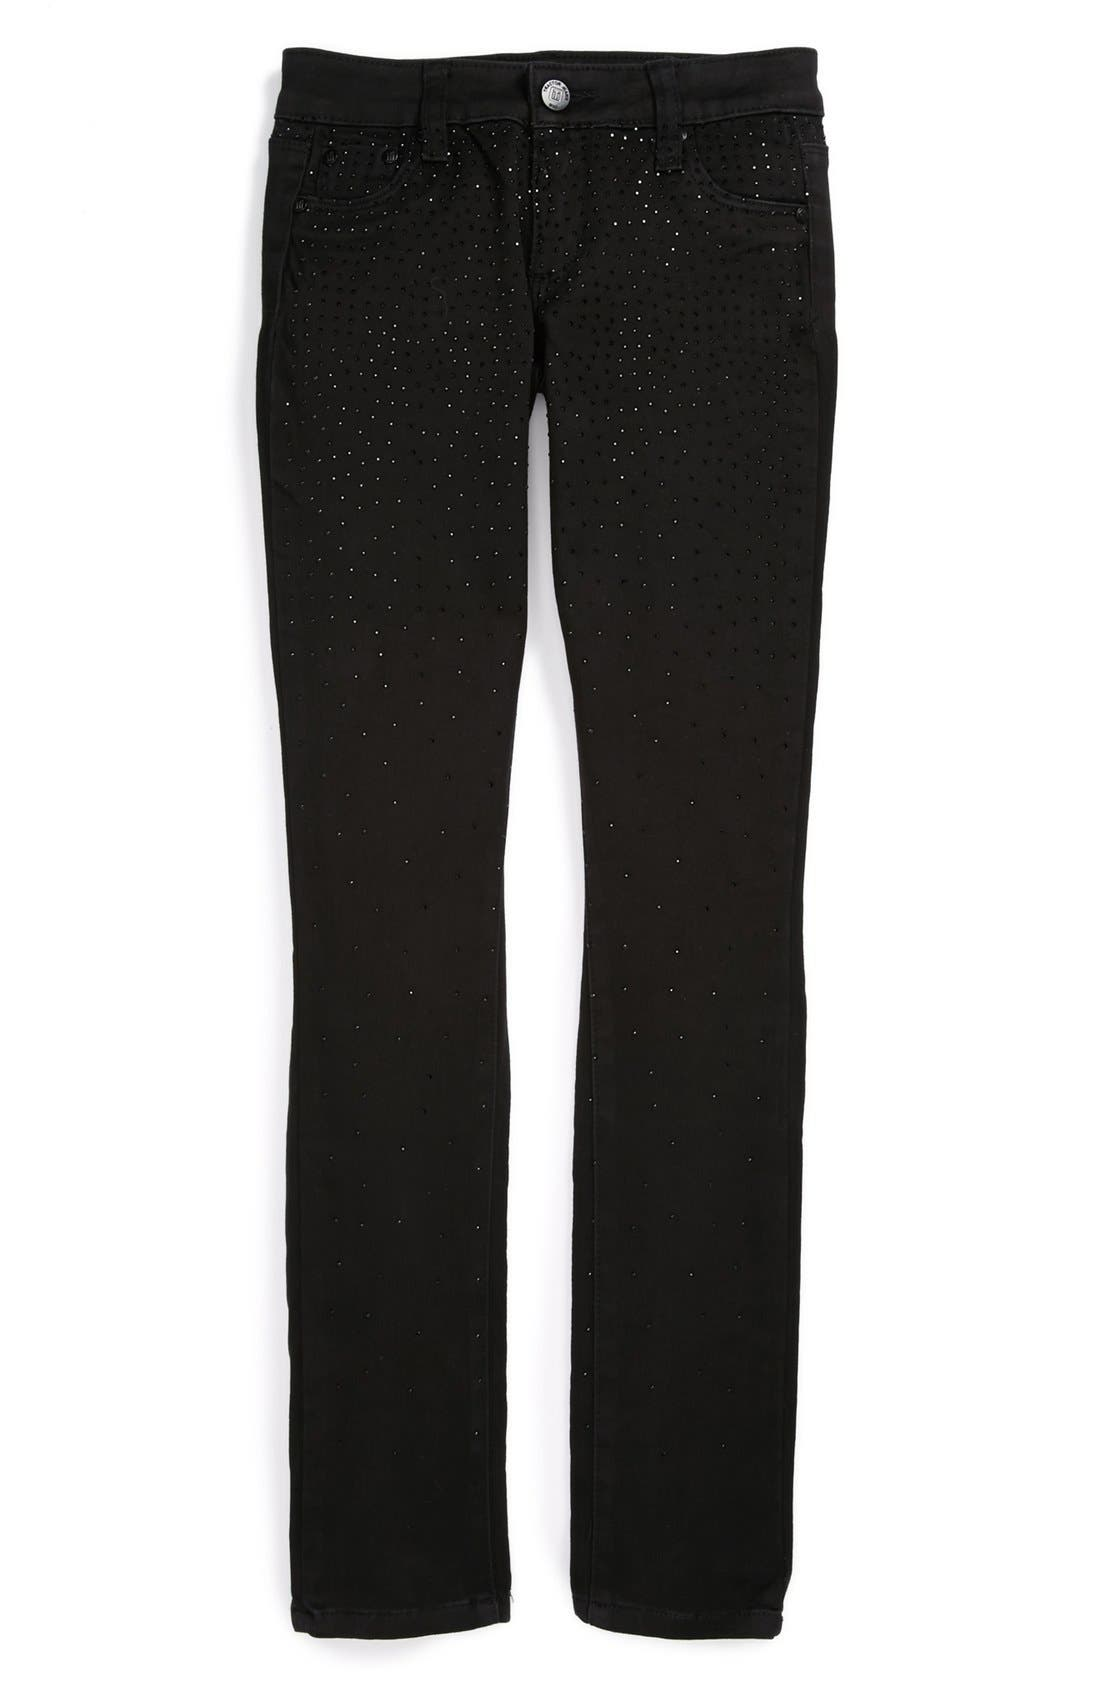 Alternate Image 1 Selected - Tractr Sparkle Skinny Jeans (Big Girls)